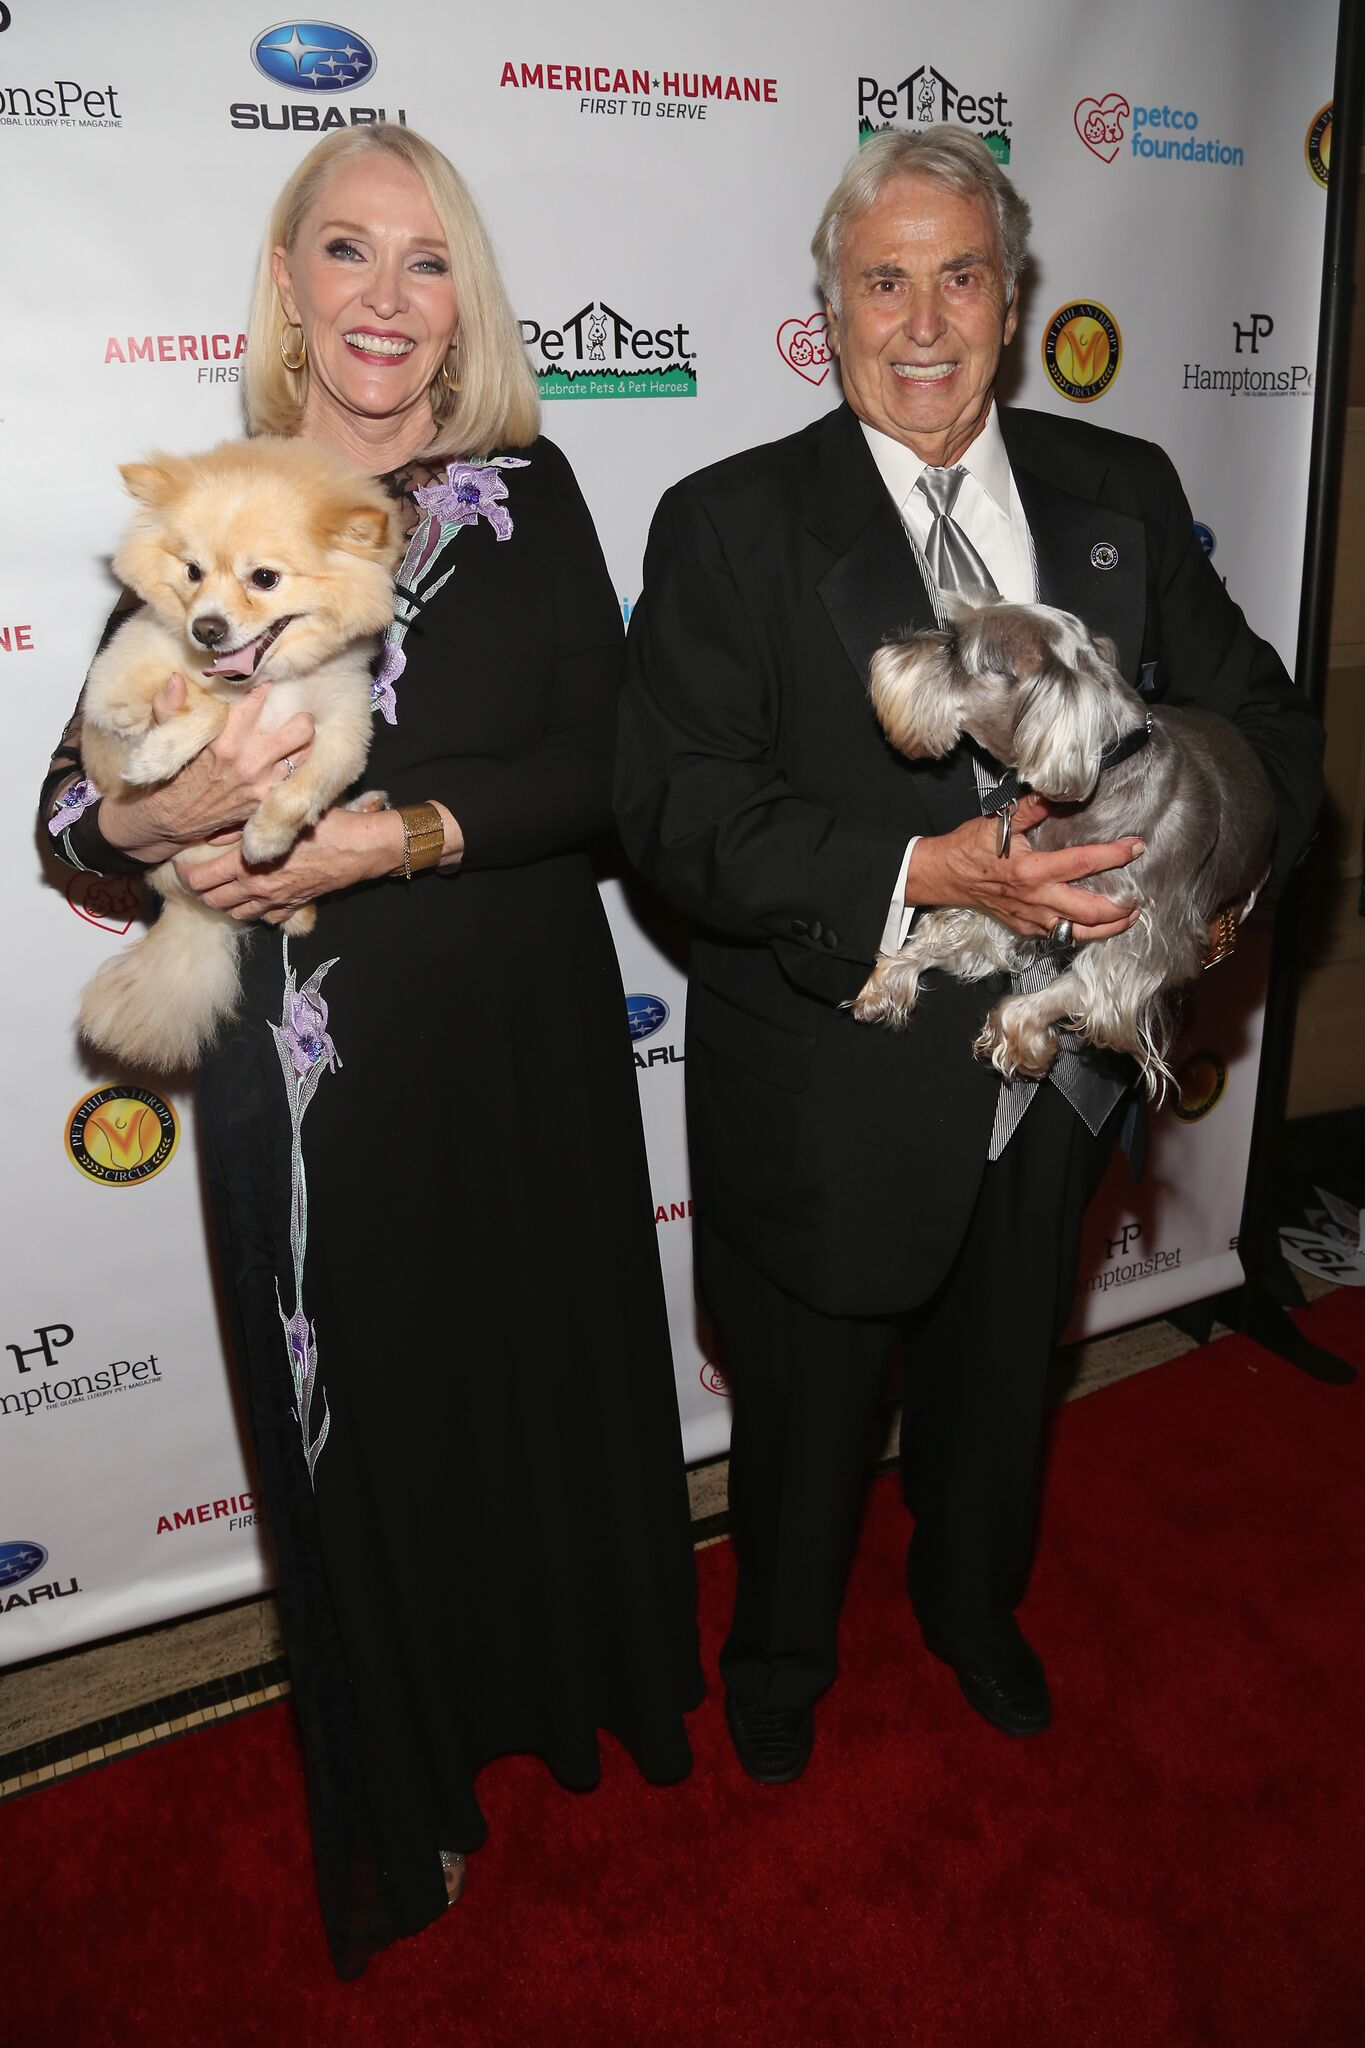 Pet Philanthropy Circle's 5th Anniversary 'Pet Hero Awards'